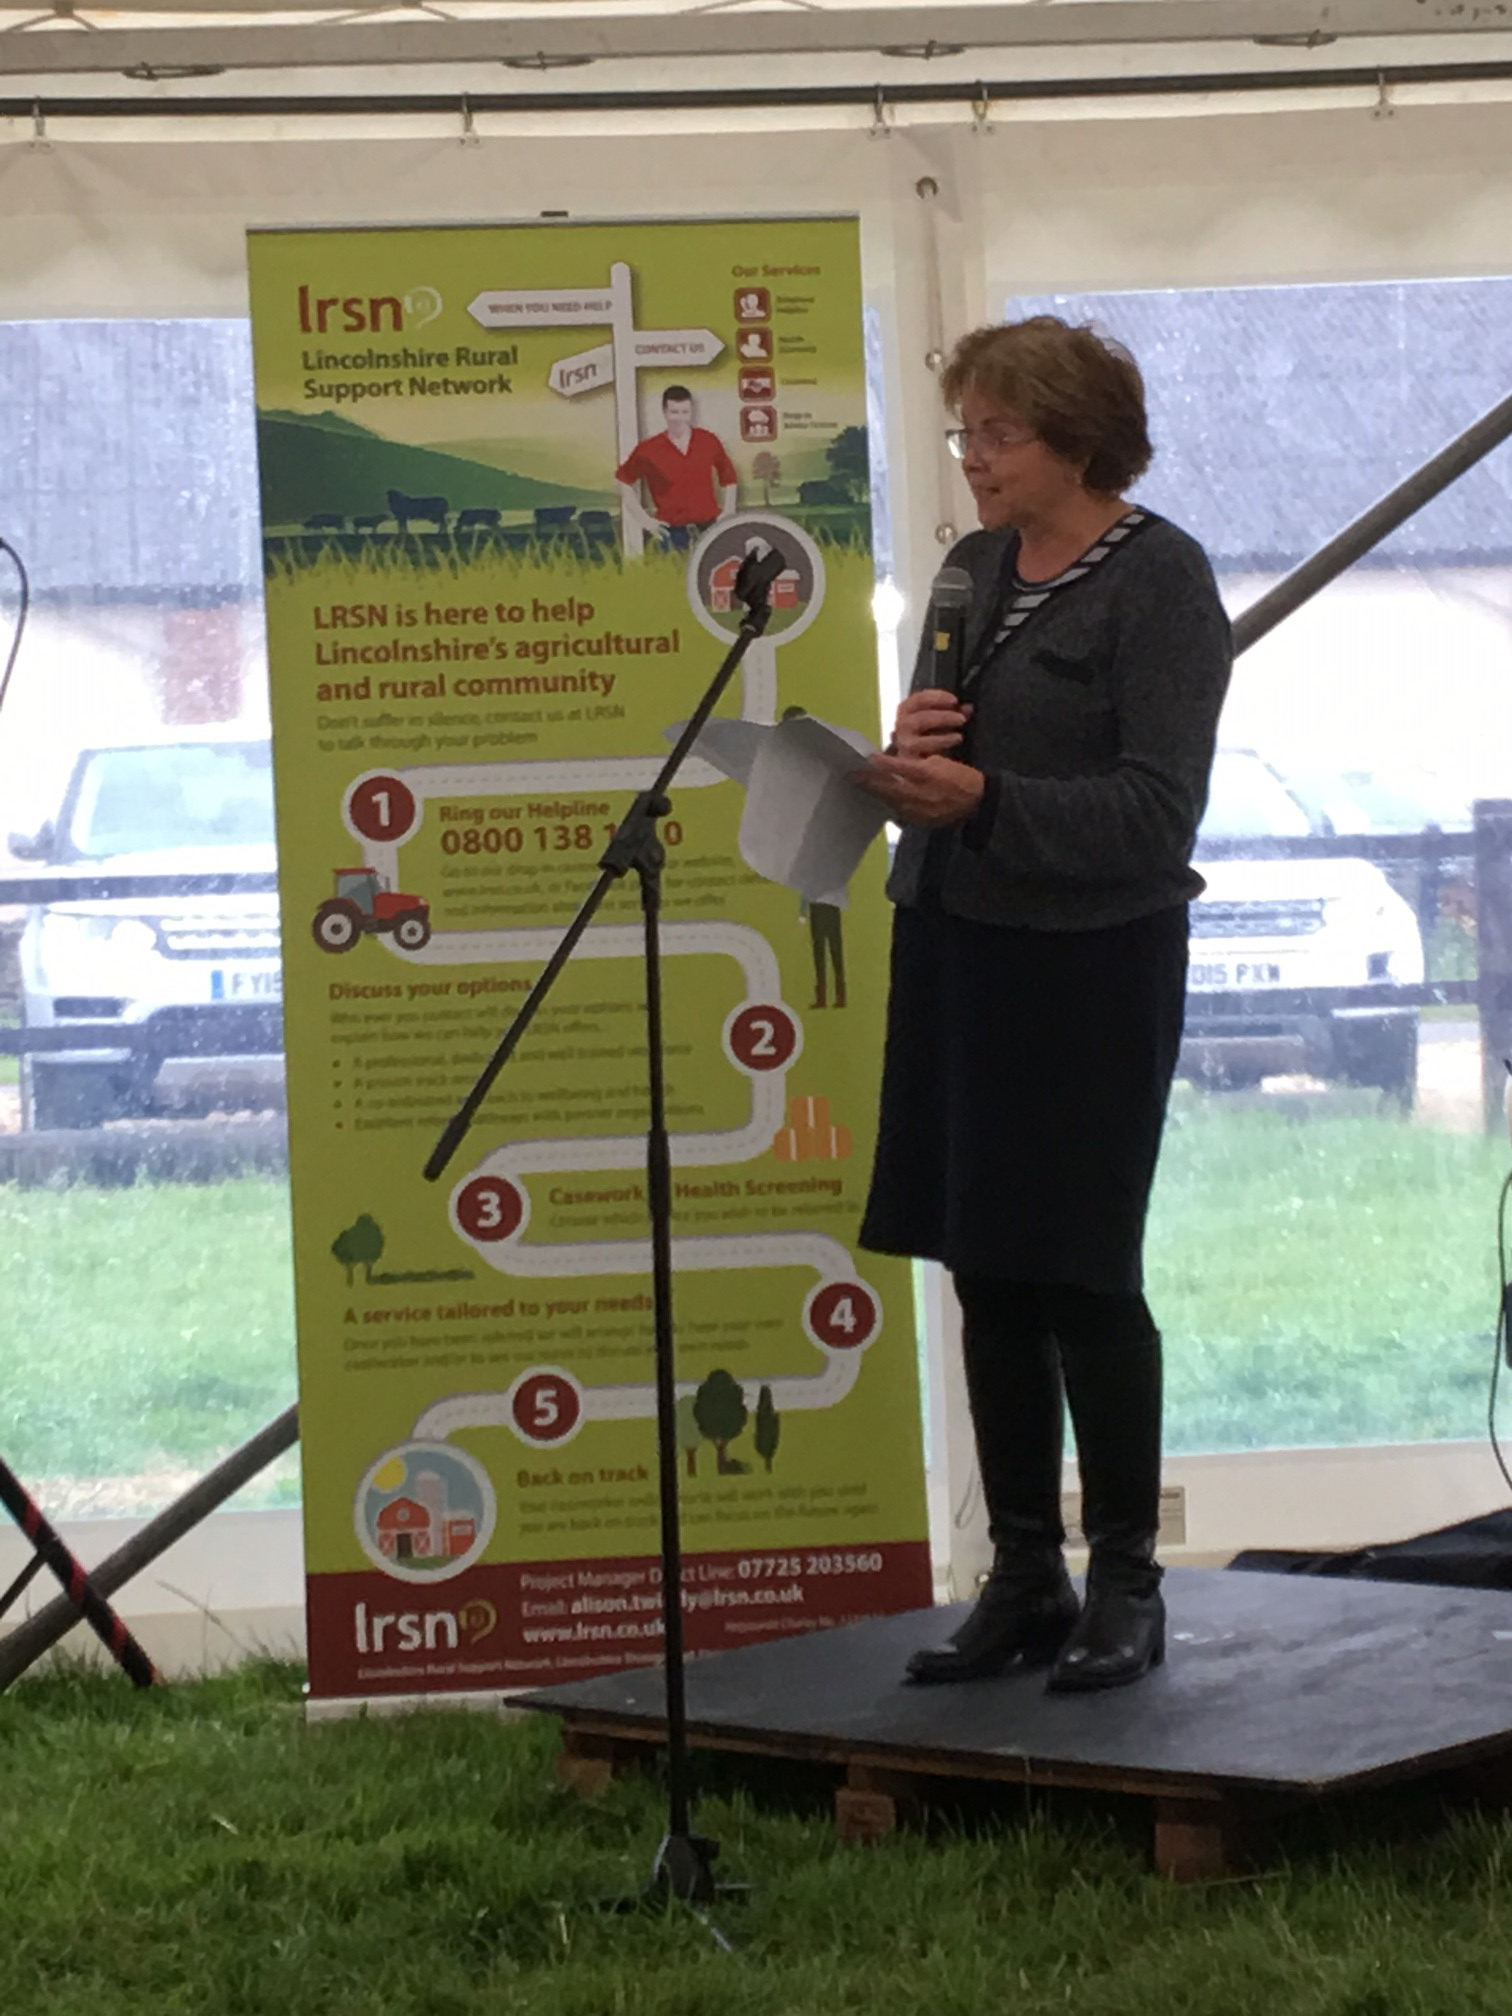 LRSN's Chairman, Meryl Ward, thanking the volunteers for their dedication to LRSN